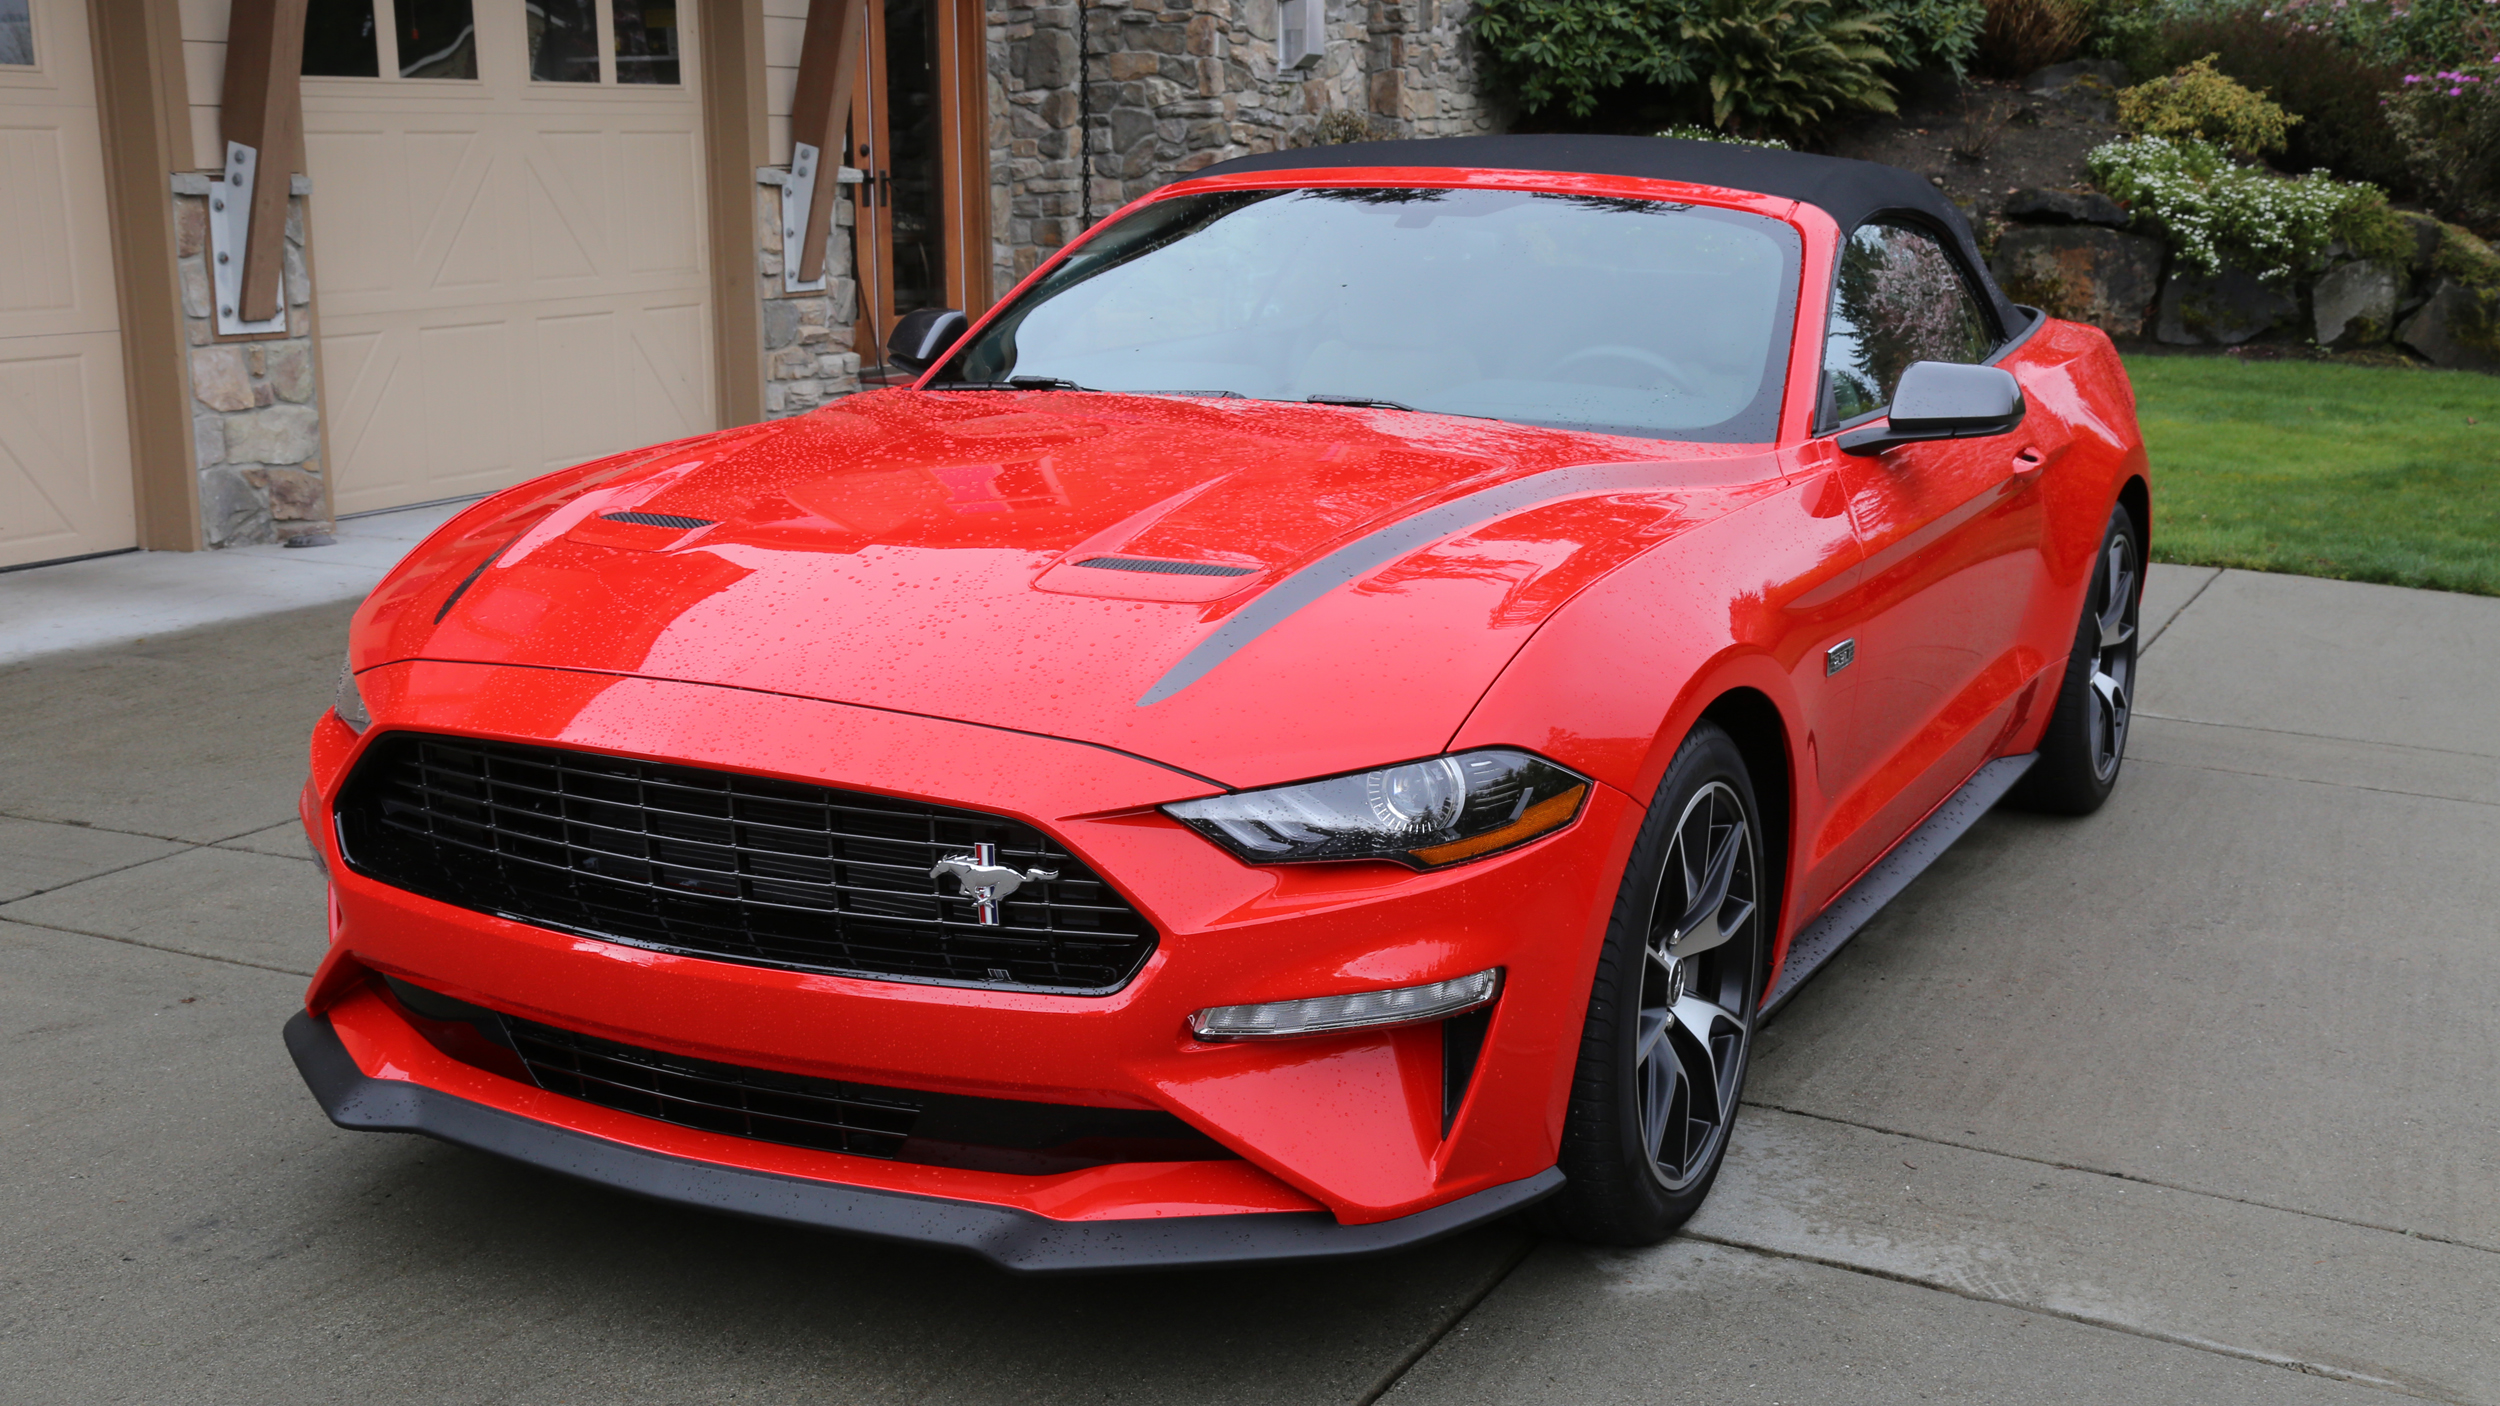 2020 Ford Mustang Ecoboost Convertible With High Performance Package Review Autoblog